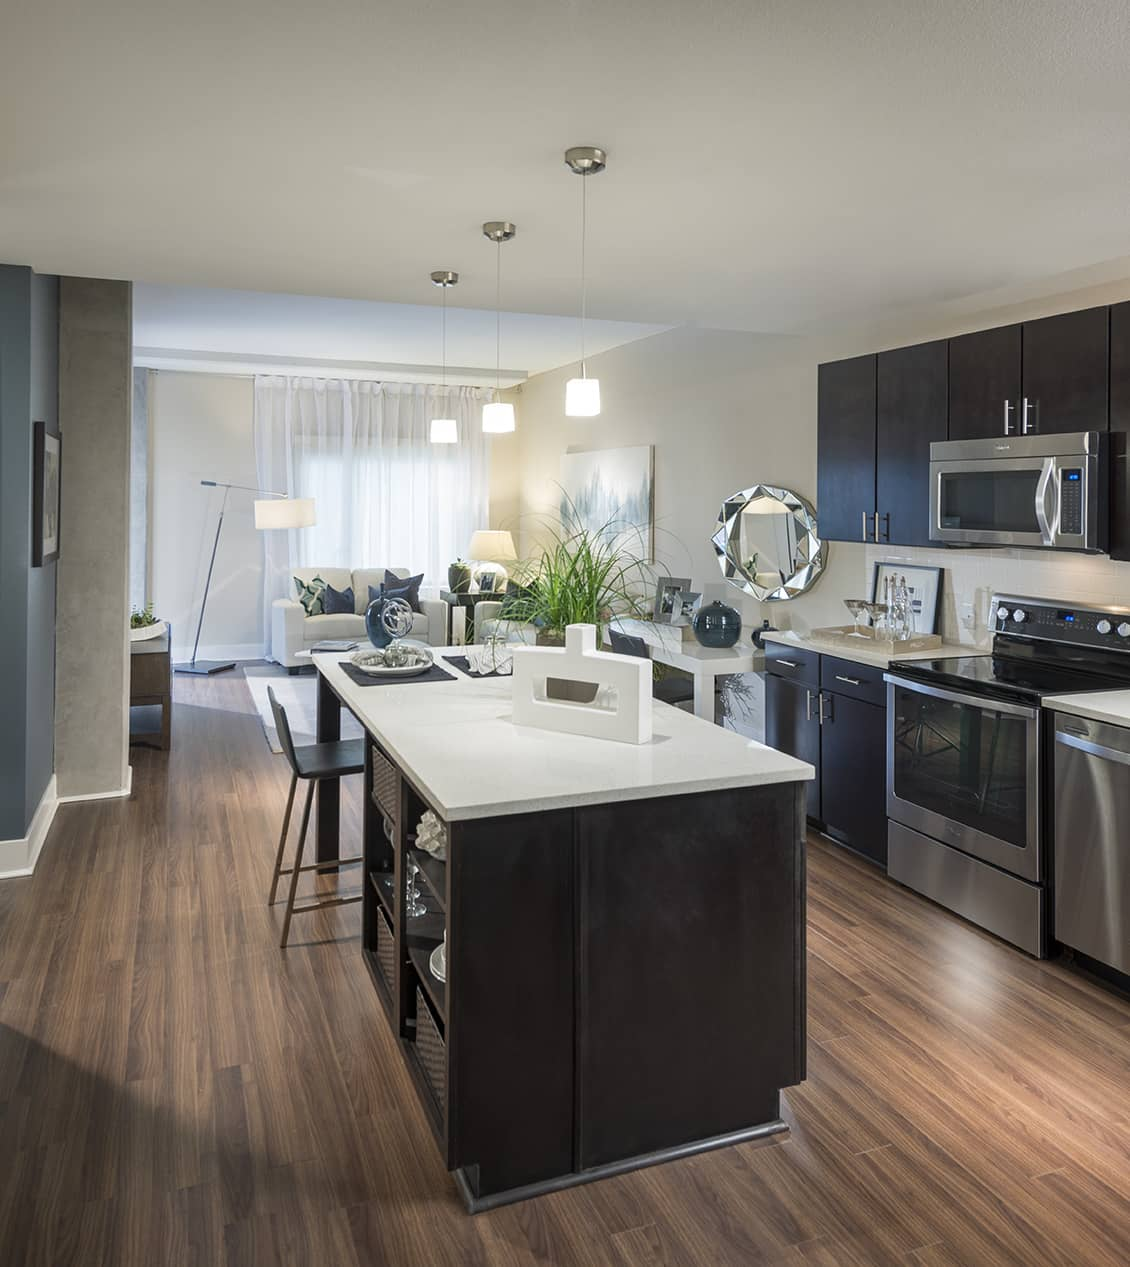 Kitchen at Channel Mission Bay Serviced Apartments